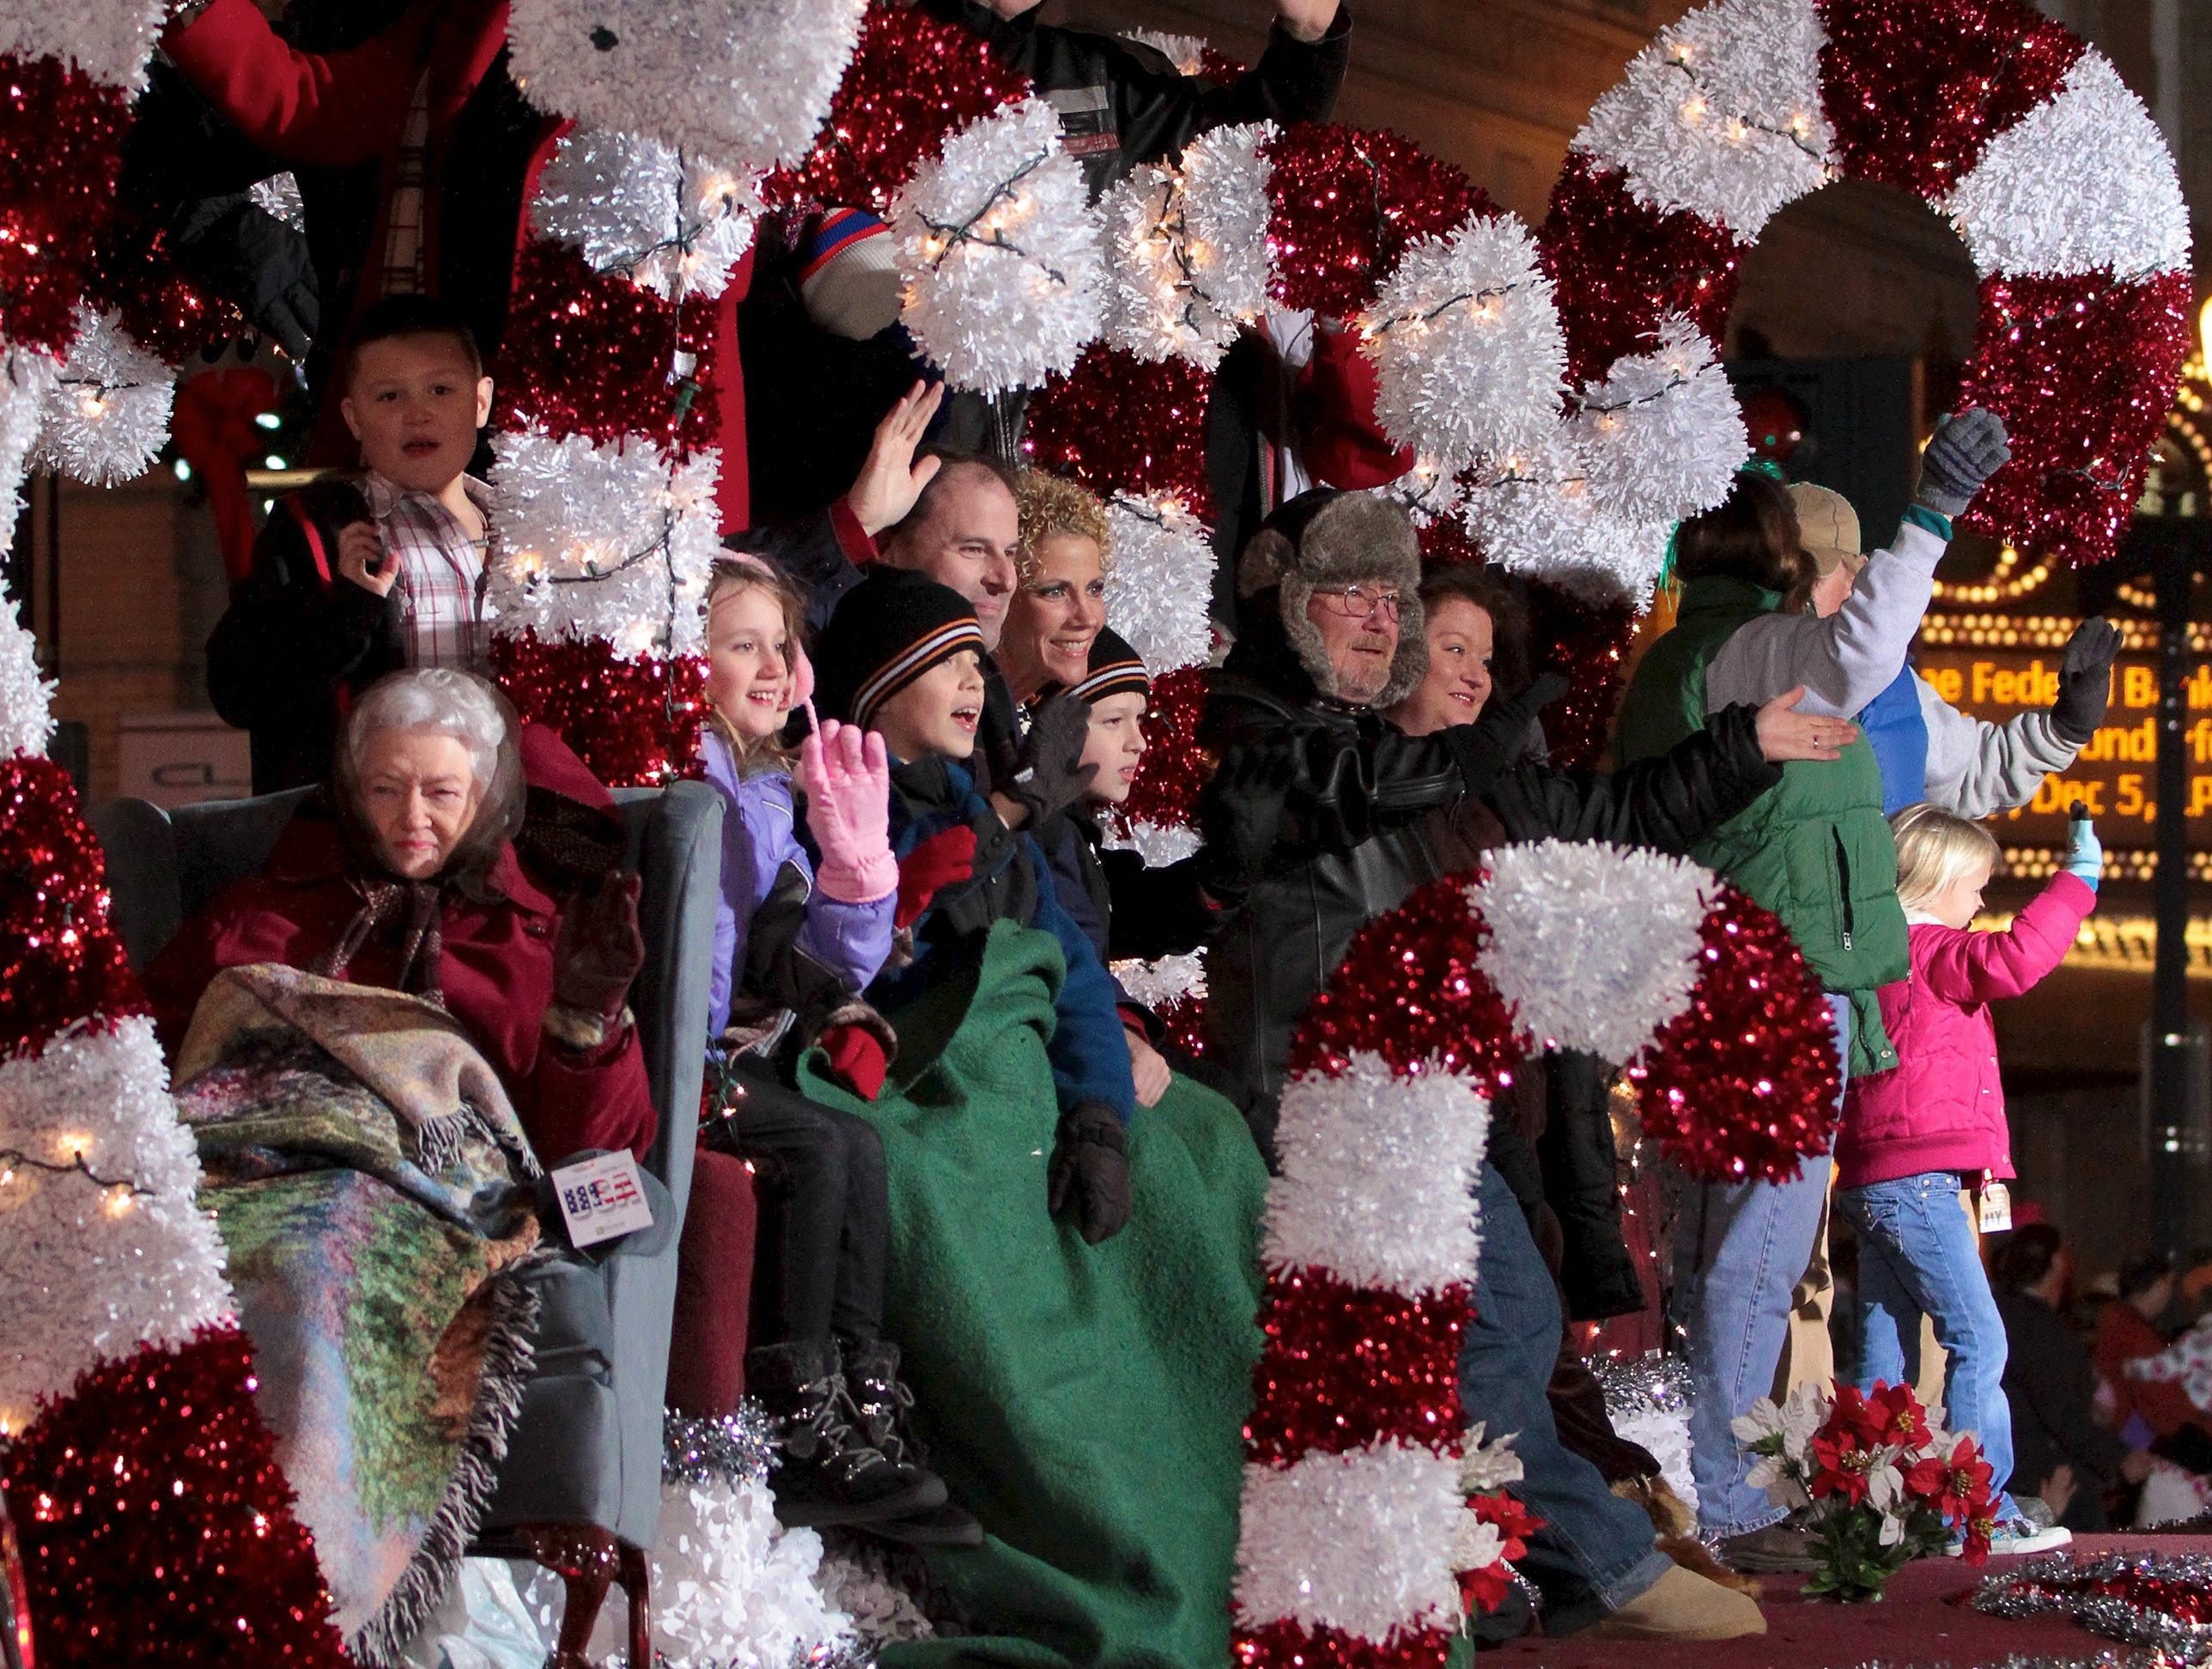 The Fowlers Furniture float is shown during the annual Knoxville Christmas Parade on Friday, December 3, 2010.